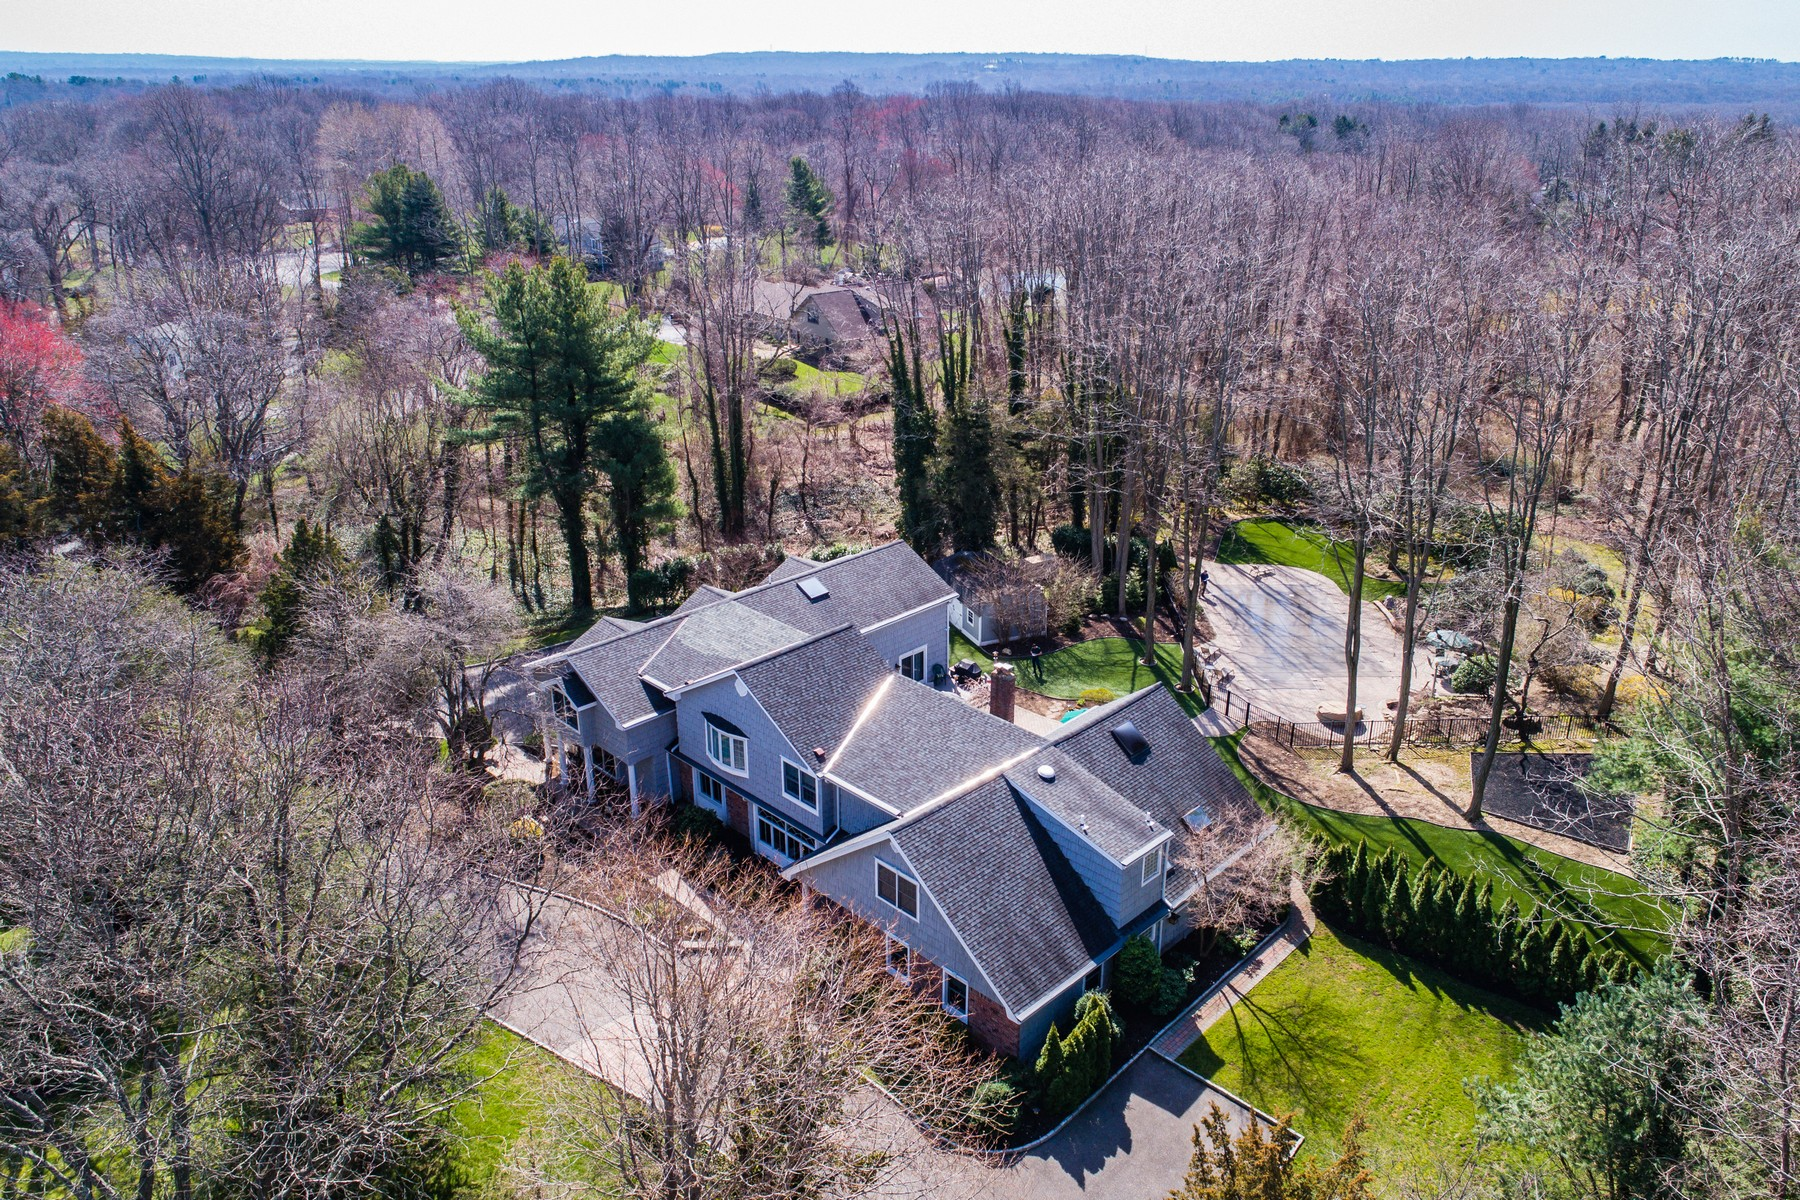 Single Family Home for Sale at Colonial 35 Cedarfield Rd Laurel Hollow, New York, 11791 United States